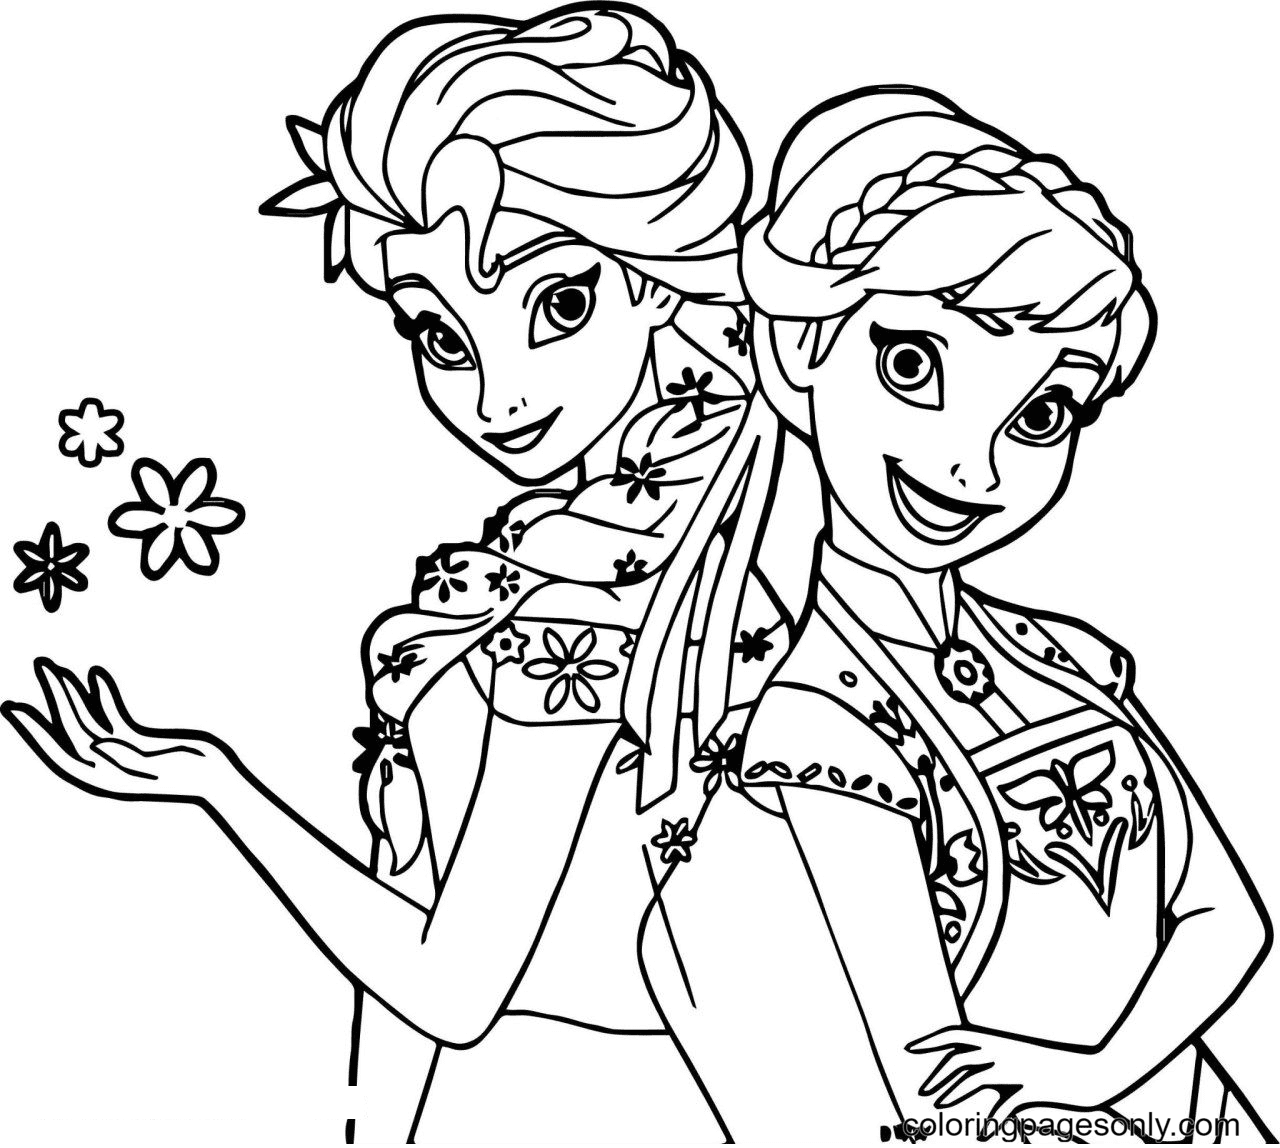 Disney Frozen Elsa And Anna Coloring Page